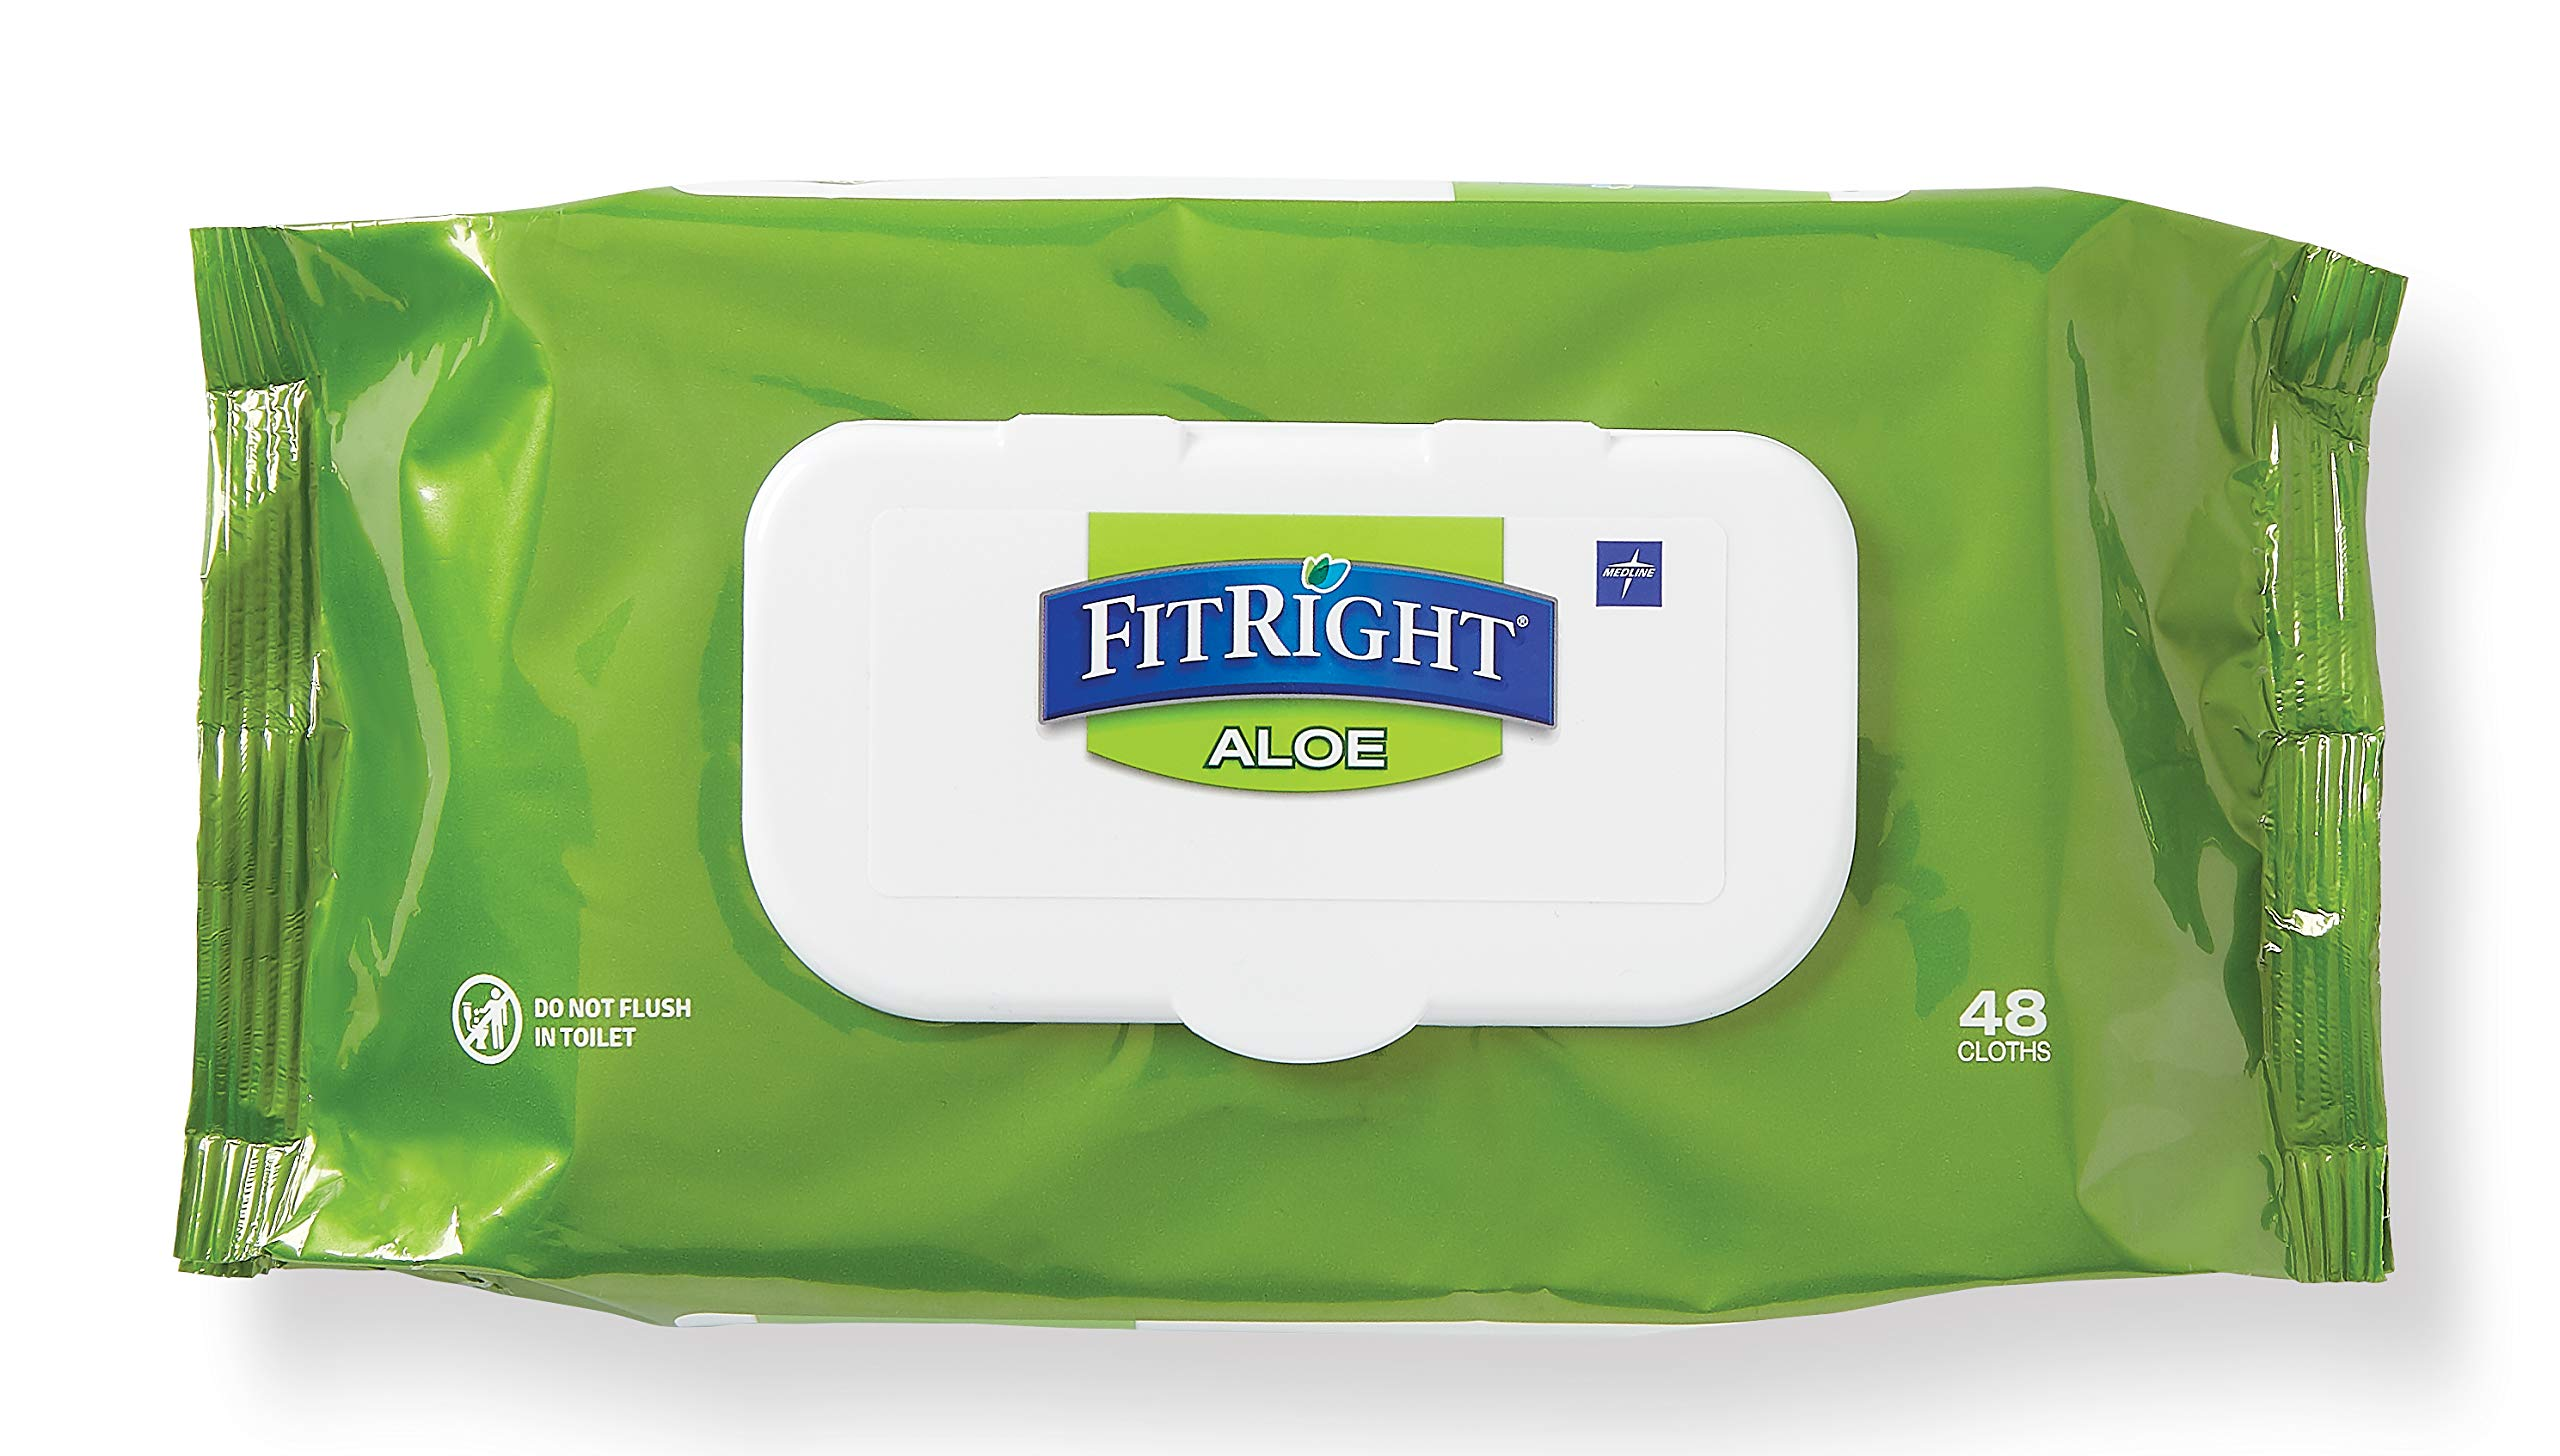 FitRight Aloe Personal Cleansing Cloth Wipes, Scented, 576 Count, 8 x 12 inch Adult Large Incontinence Wipes